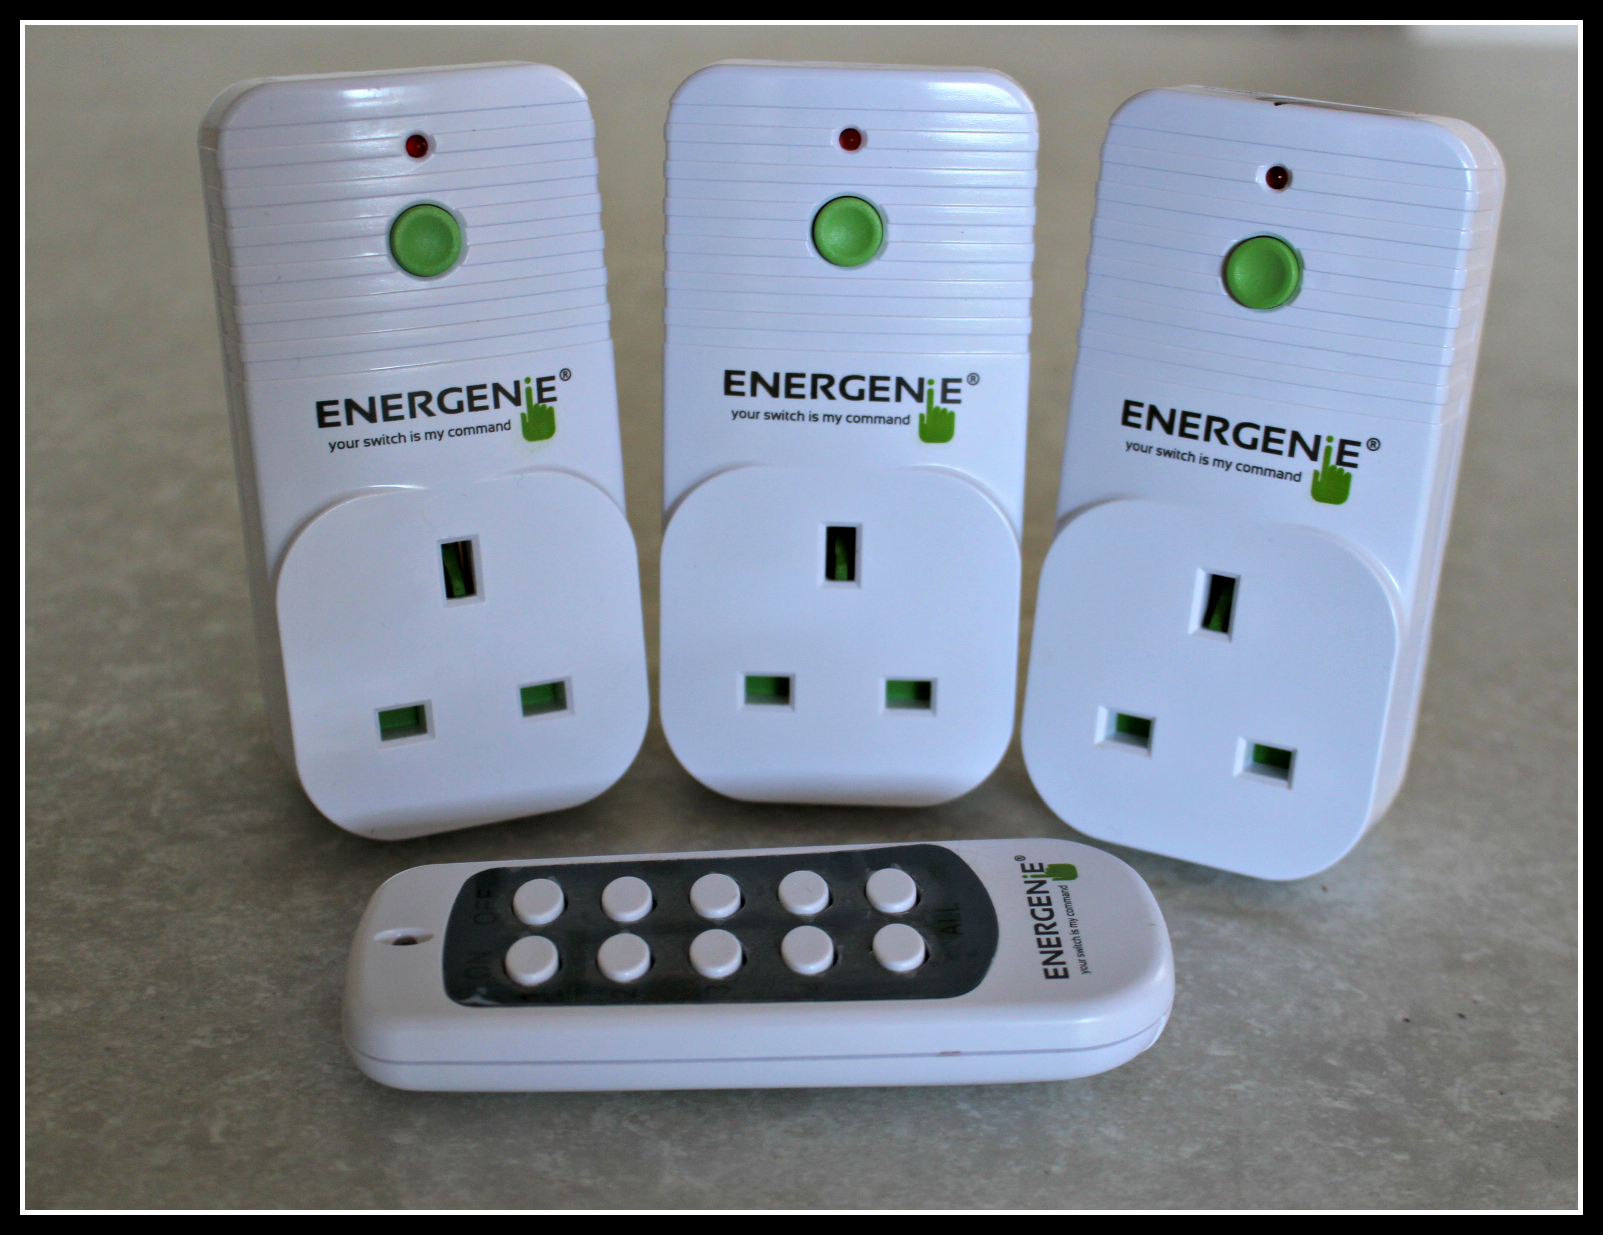 Energenie, #makeaswitch, energy use